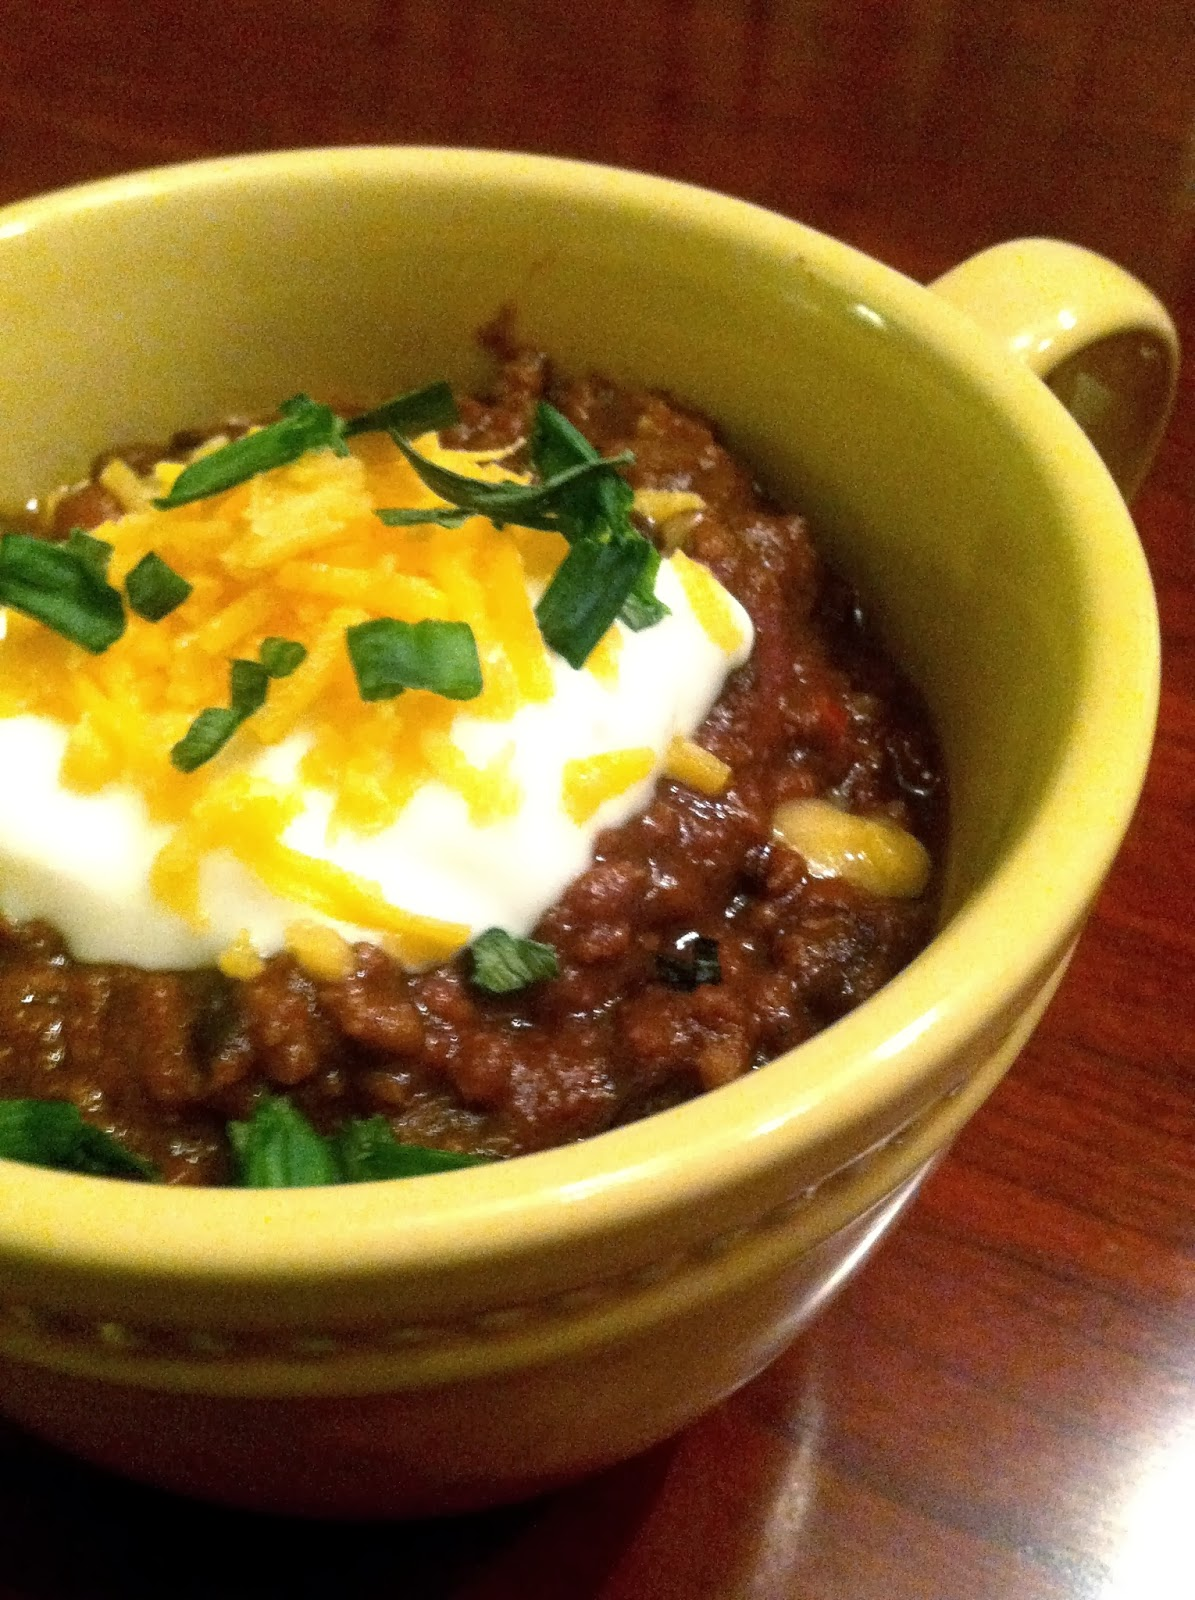 Chocolate Crockpot Slow cooker Chili